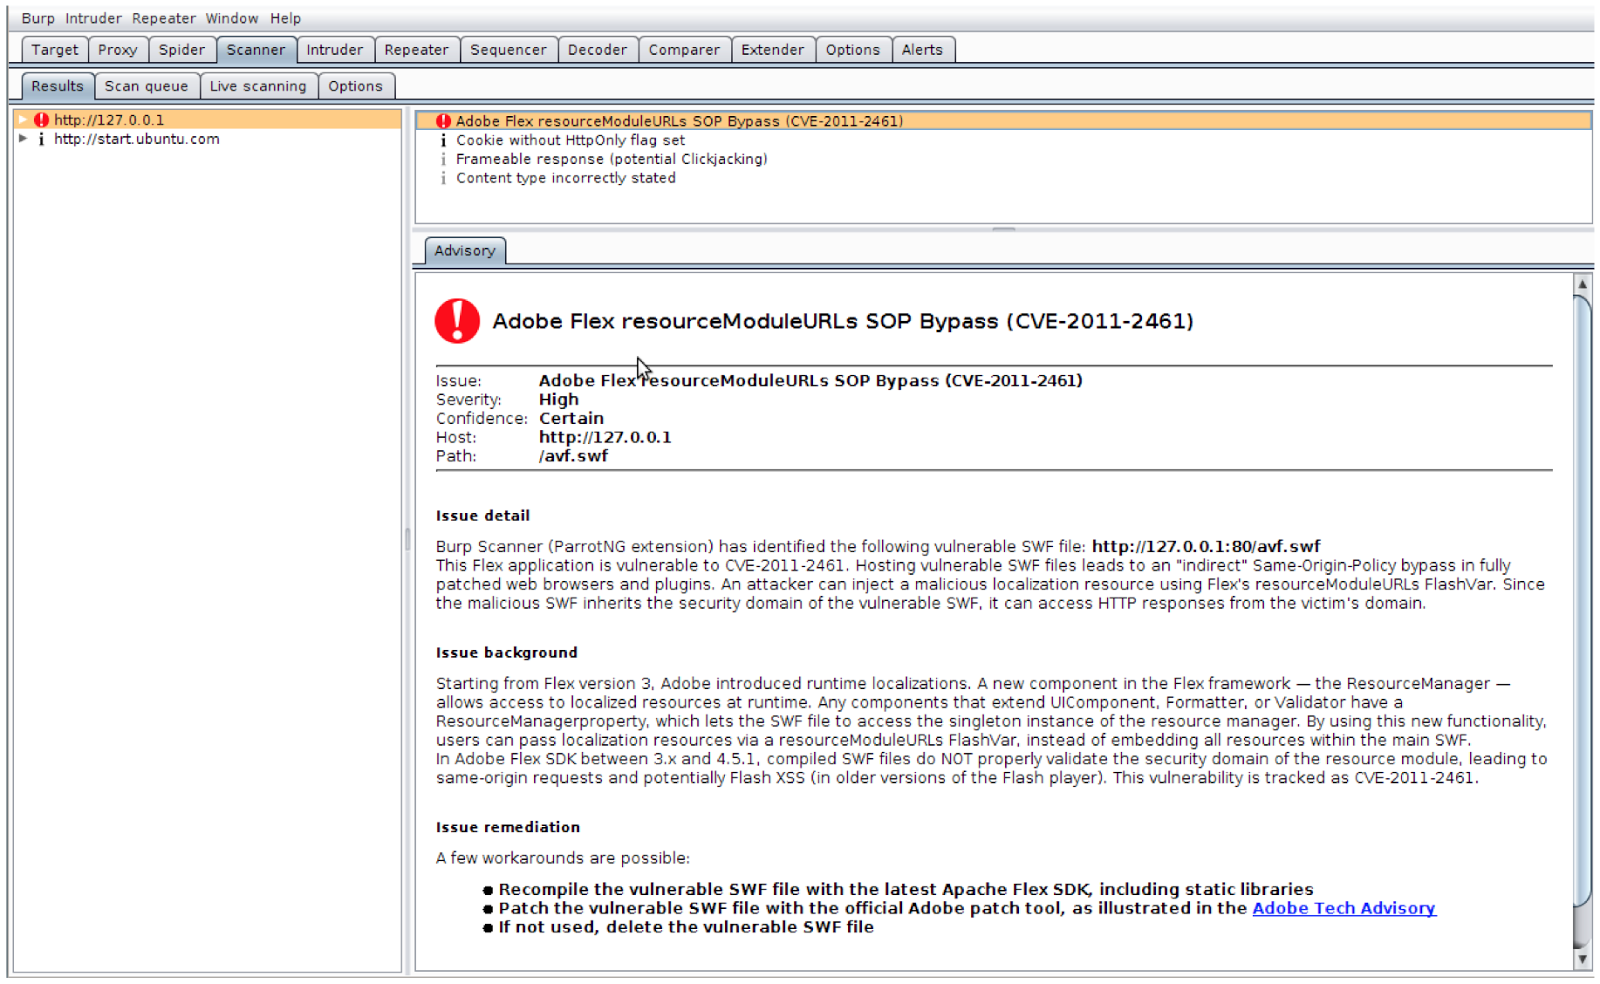 Nibble Security: The old is new, again  CVE-2011-2461 is back!